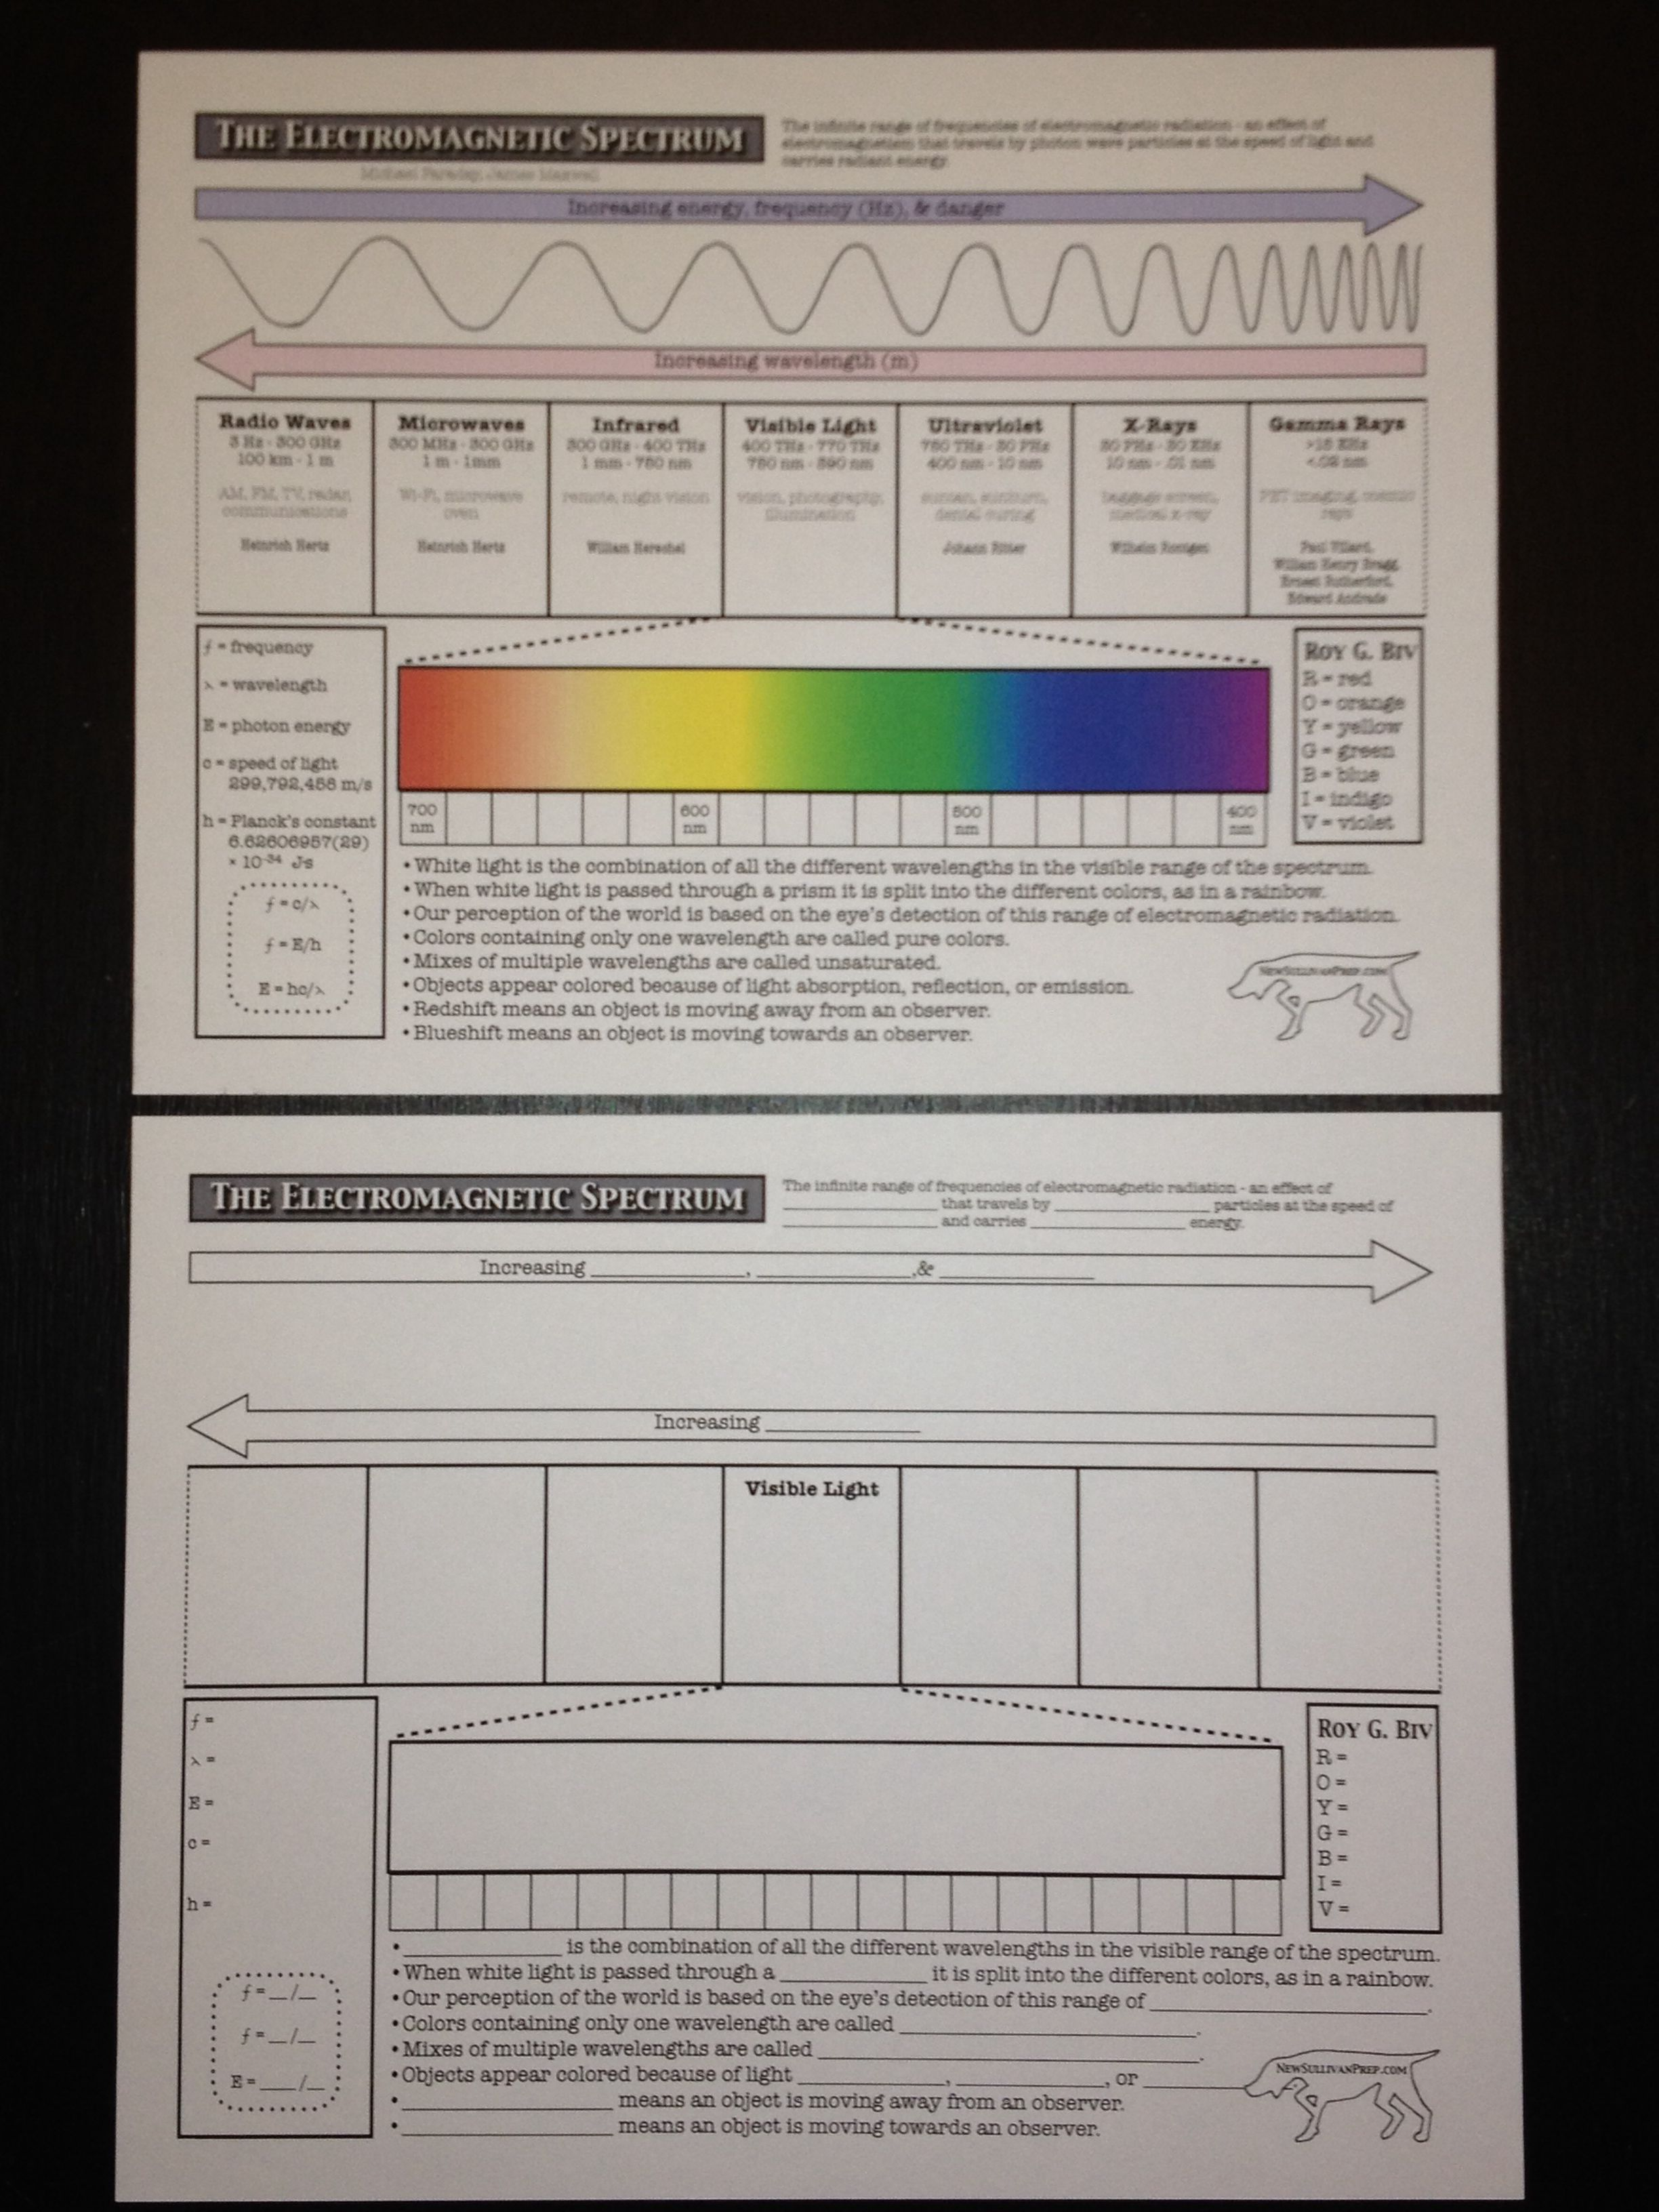 Free Electromagnetic Spectrum Worksheets Available At Newsullivanprep In The Physics Section